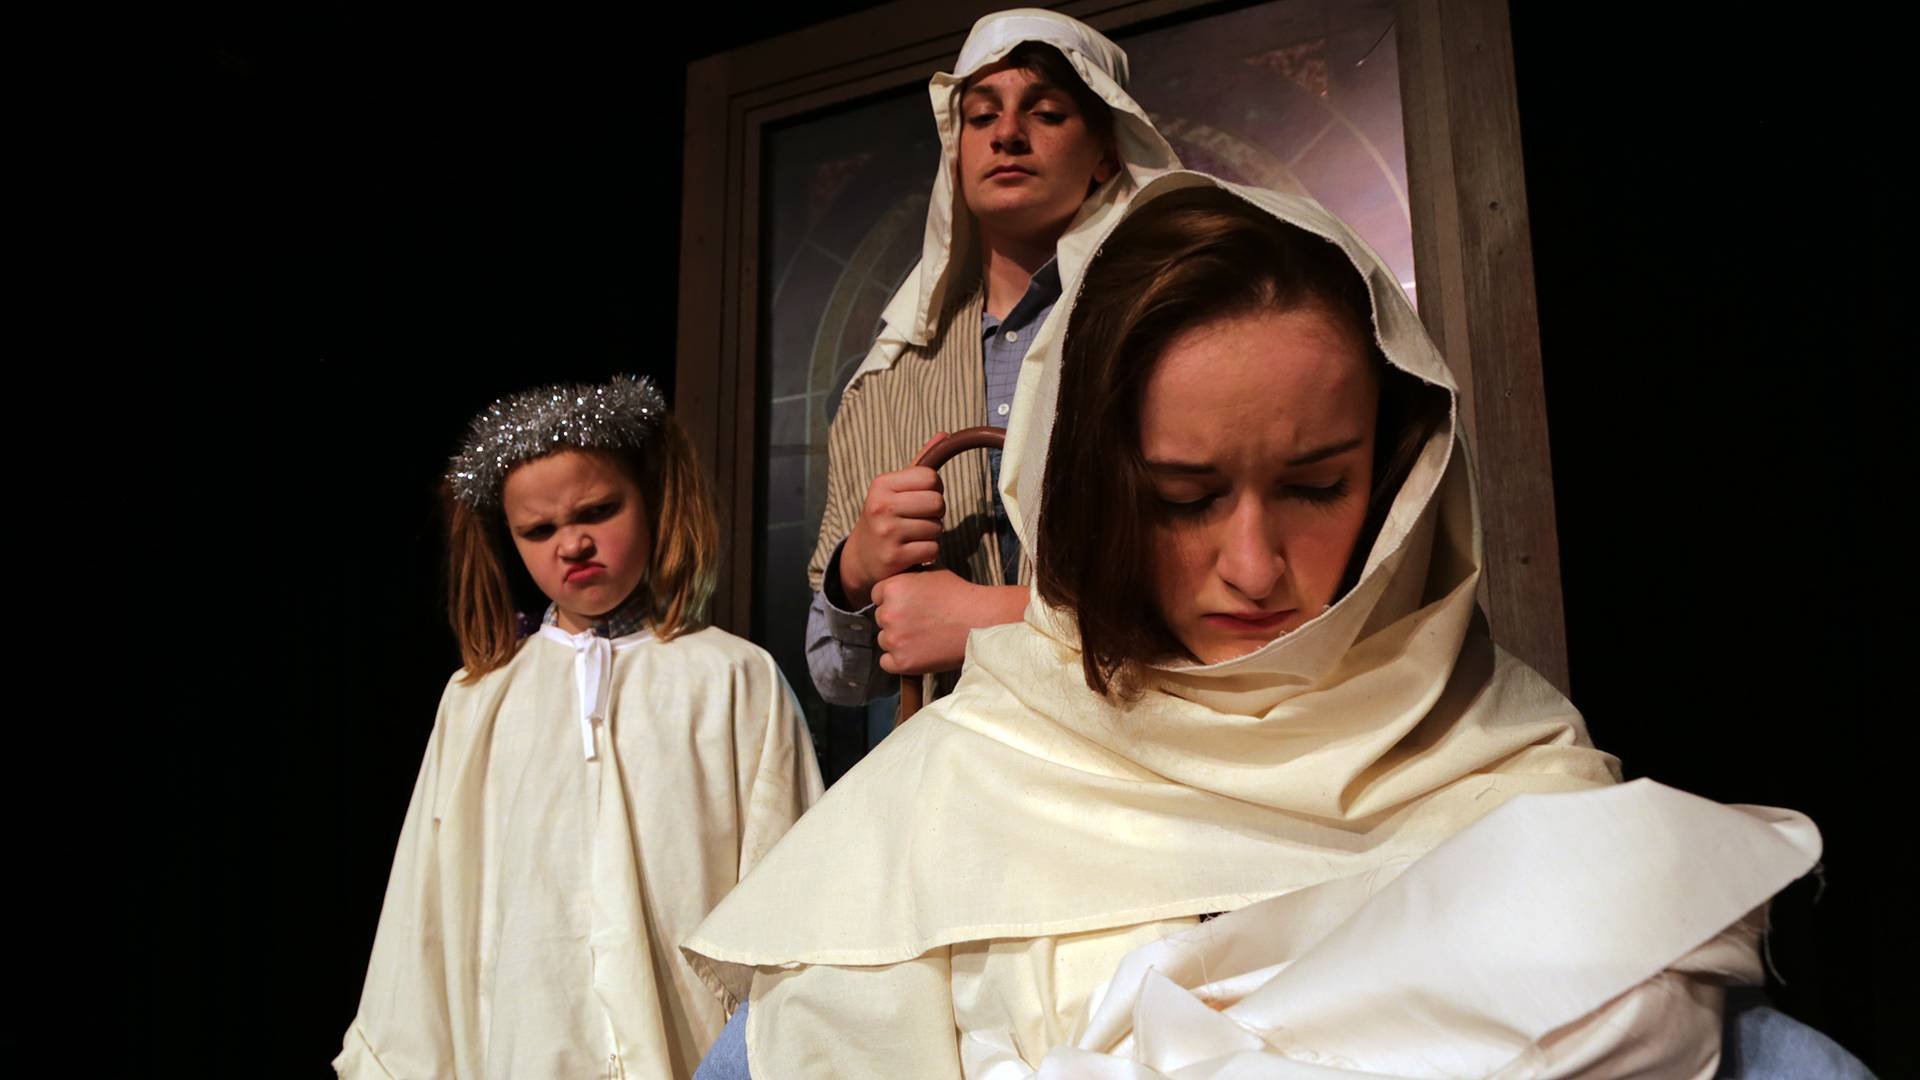 ac conservatory theatres the best christmas pageant ever opens - Best Christmas Pageant Ever Play